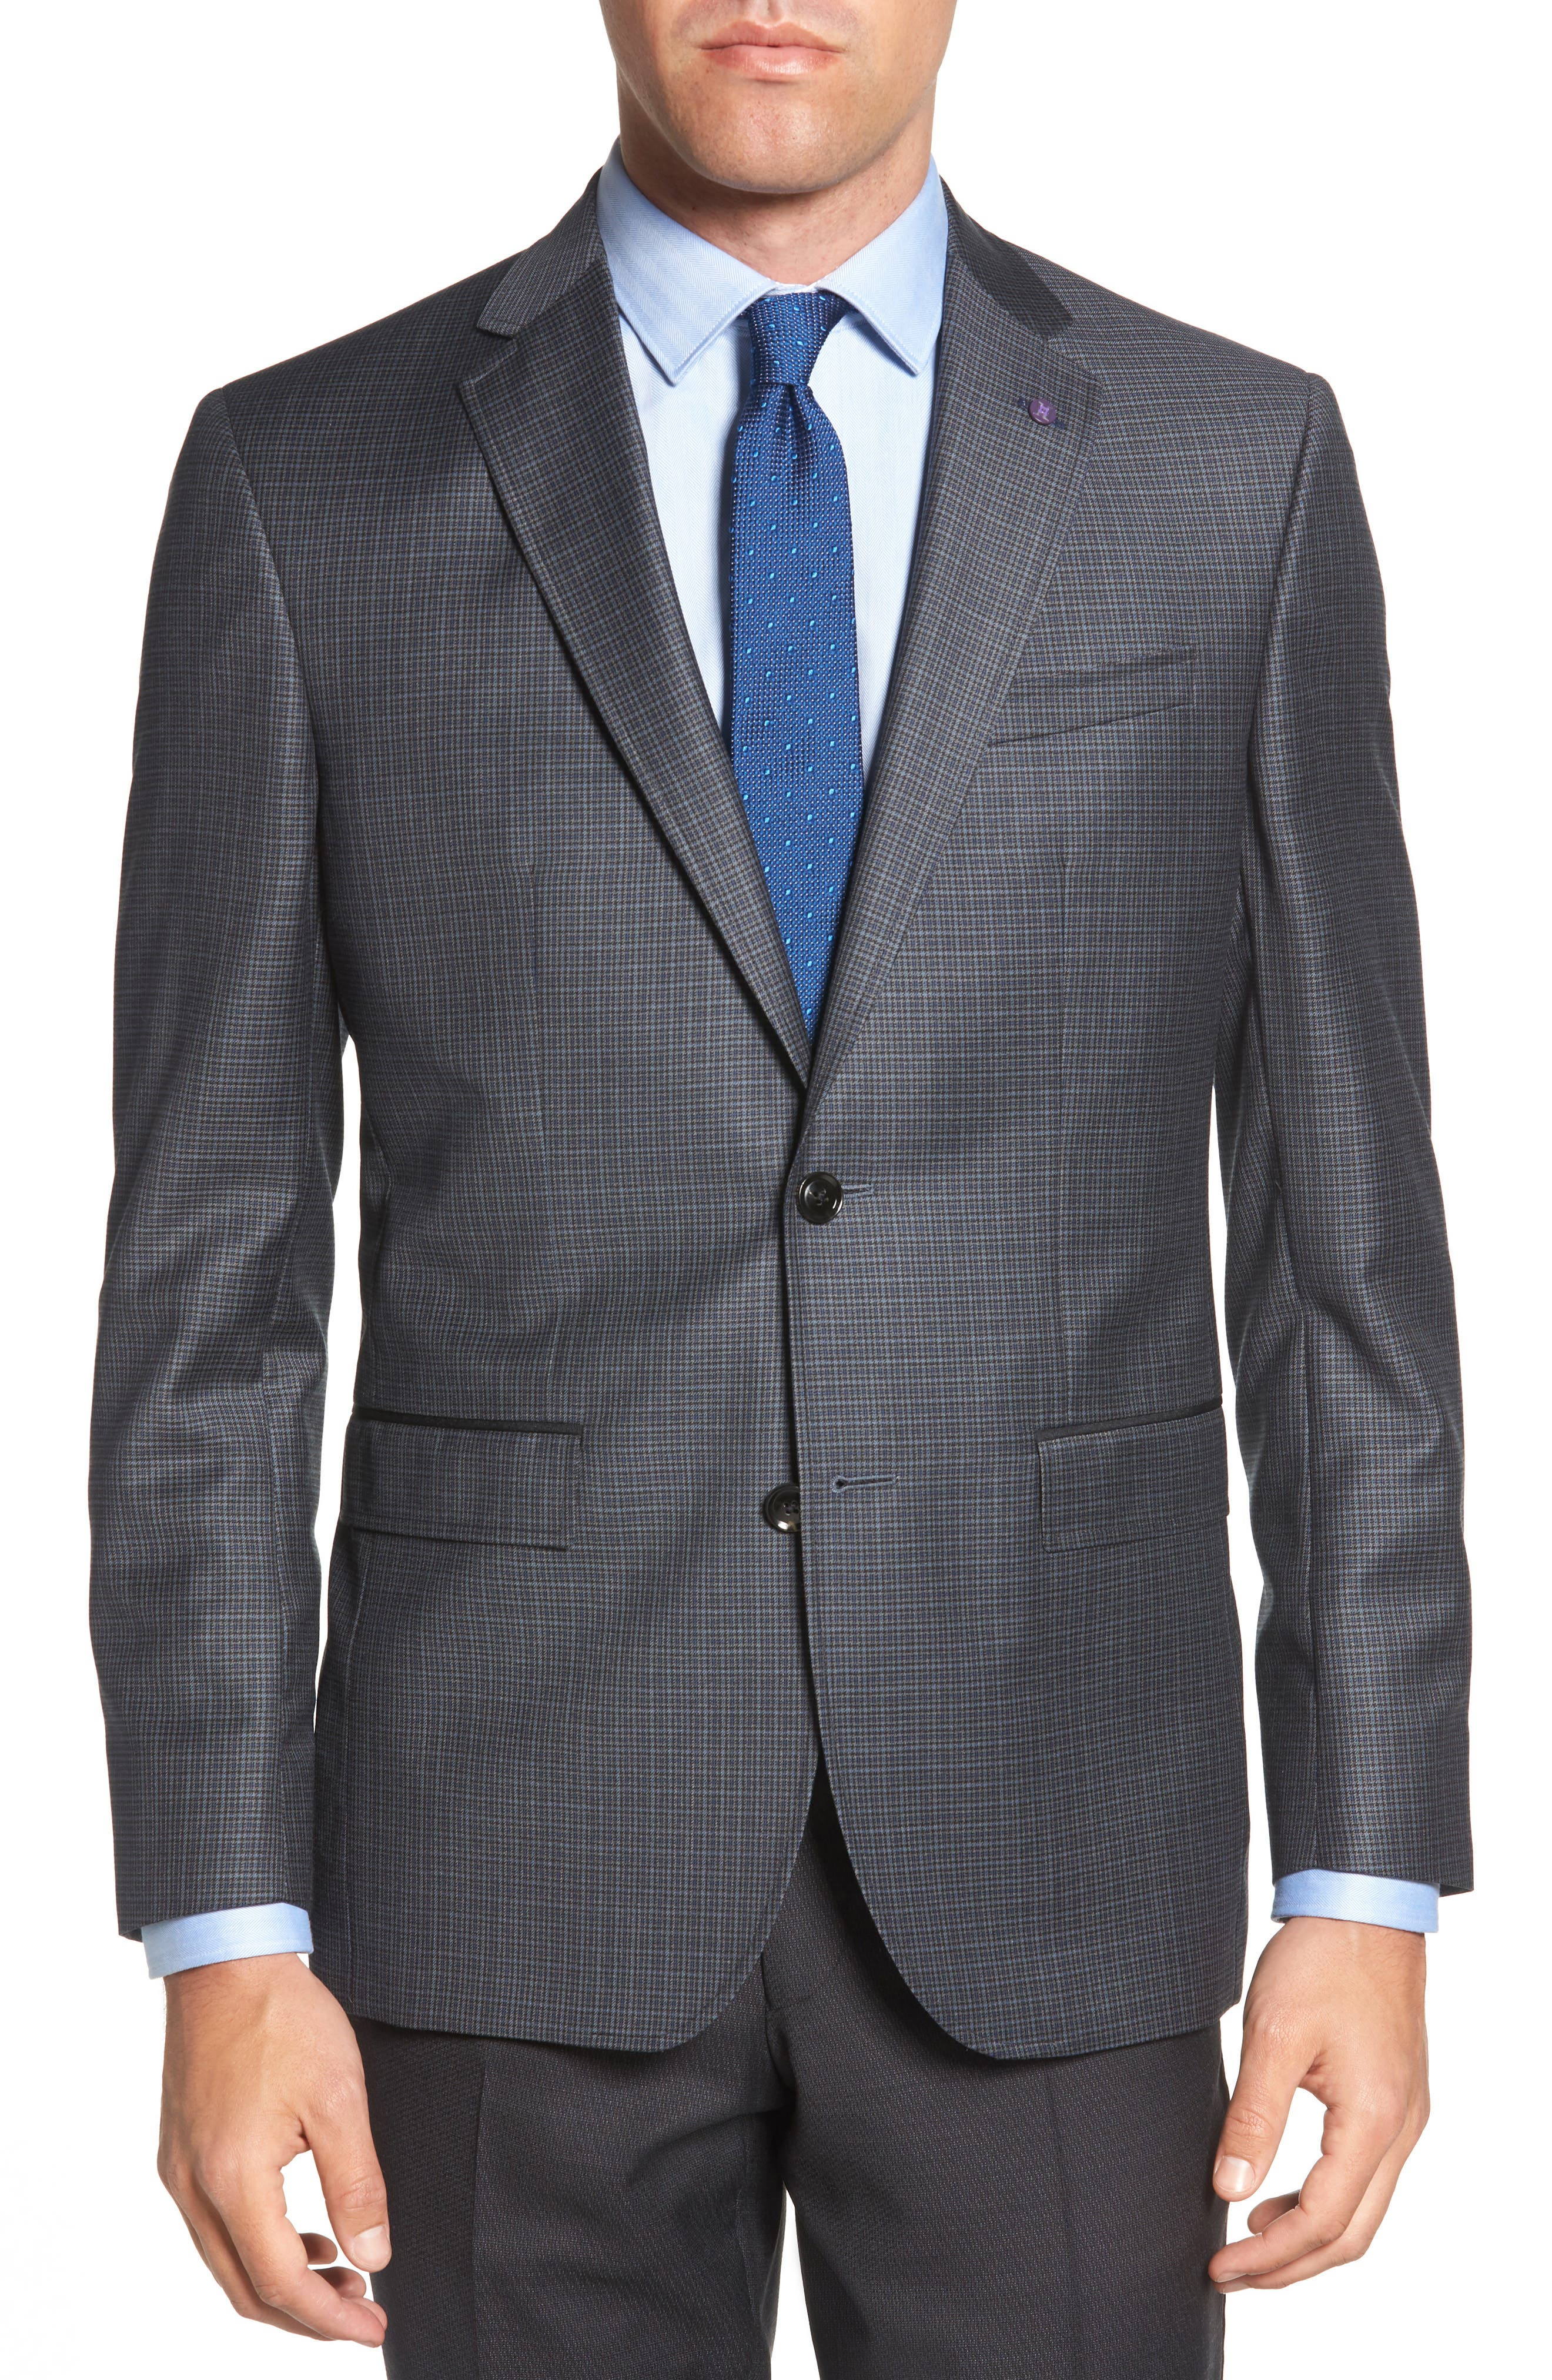 Jed Trim Fit Microcheck Wool Sport Coat,                         Main,                         color, 020